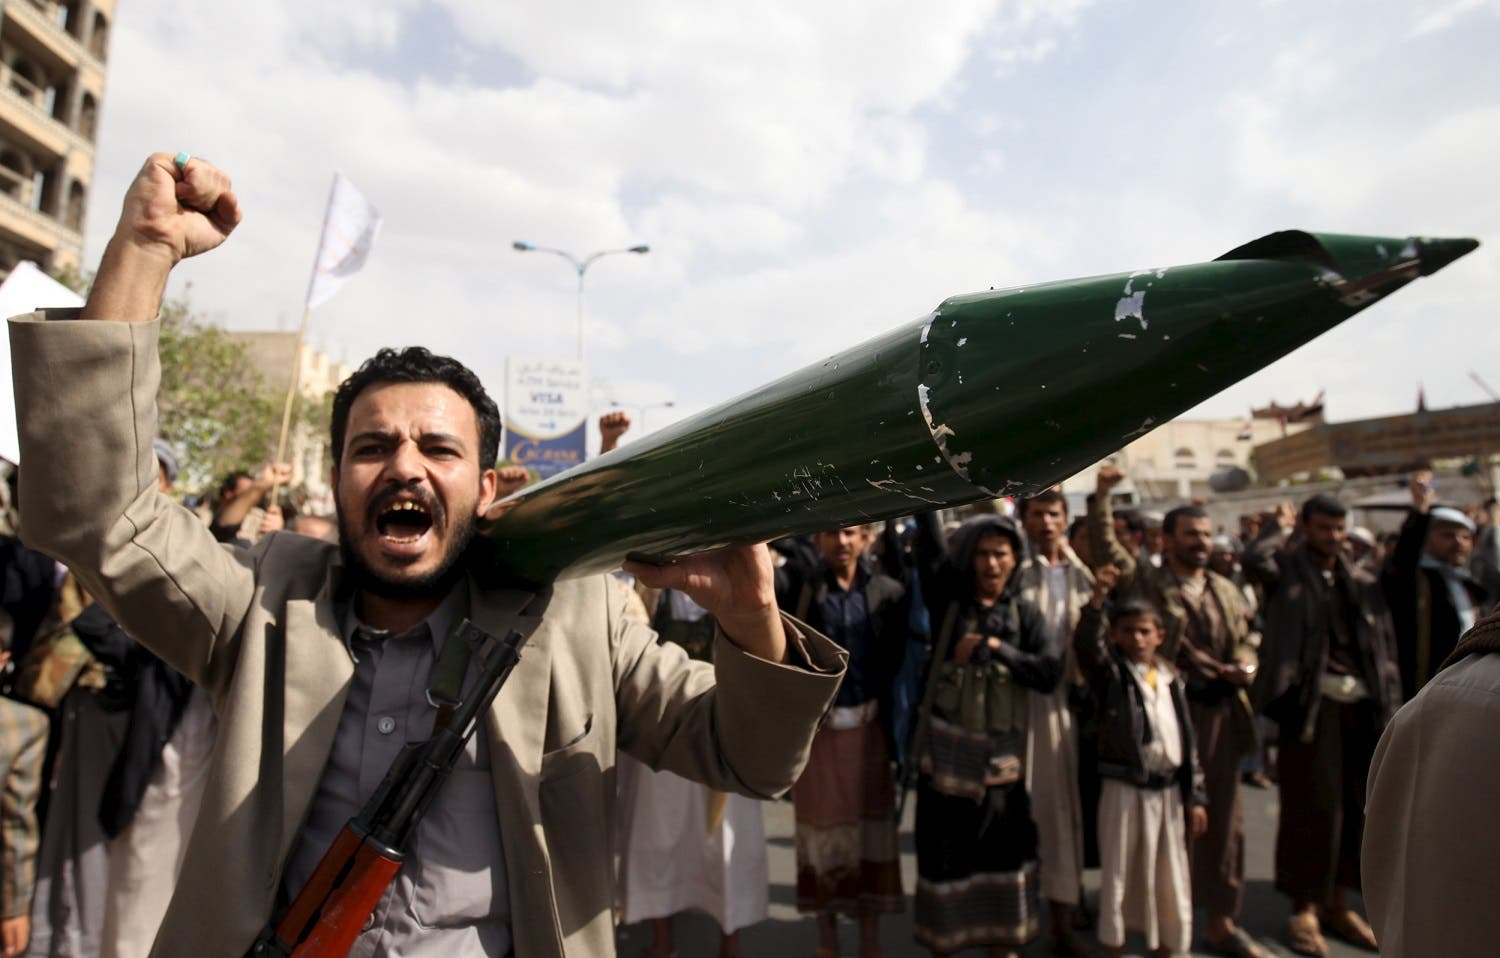 A Houthi follower carries a mock missile as he shouts slogans during a demonstration against the United Nations in Sanaa, Yemen. (File photo: Reuters)